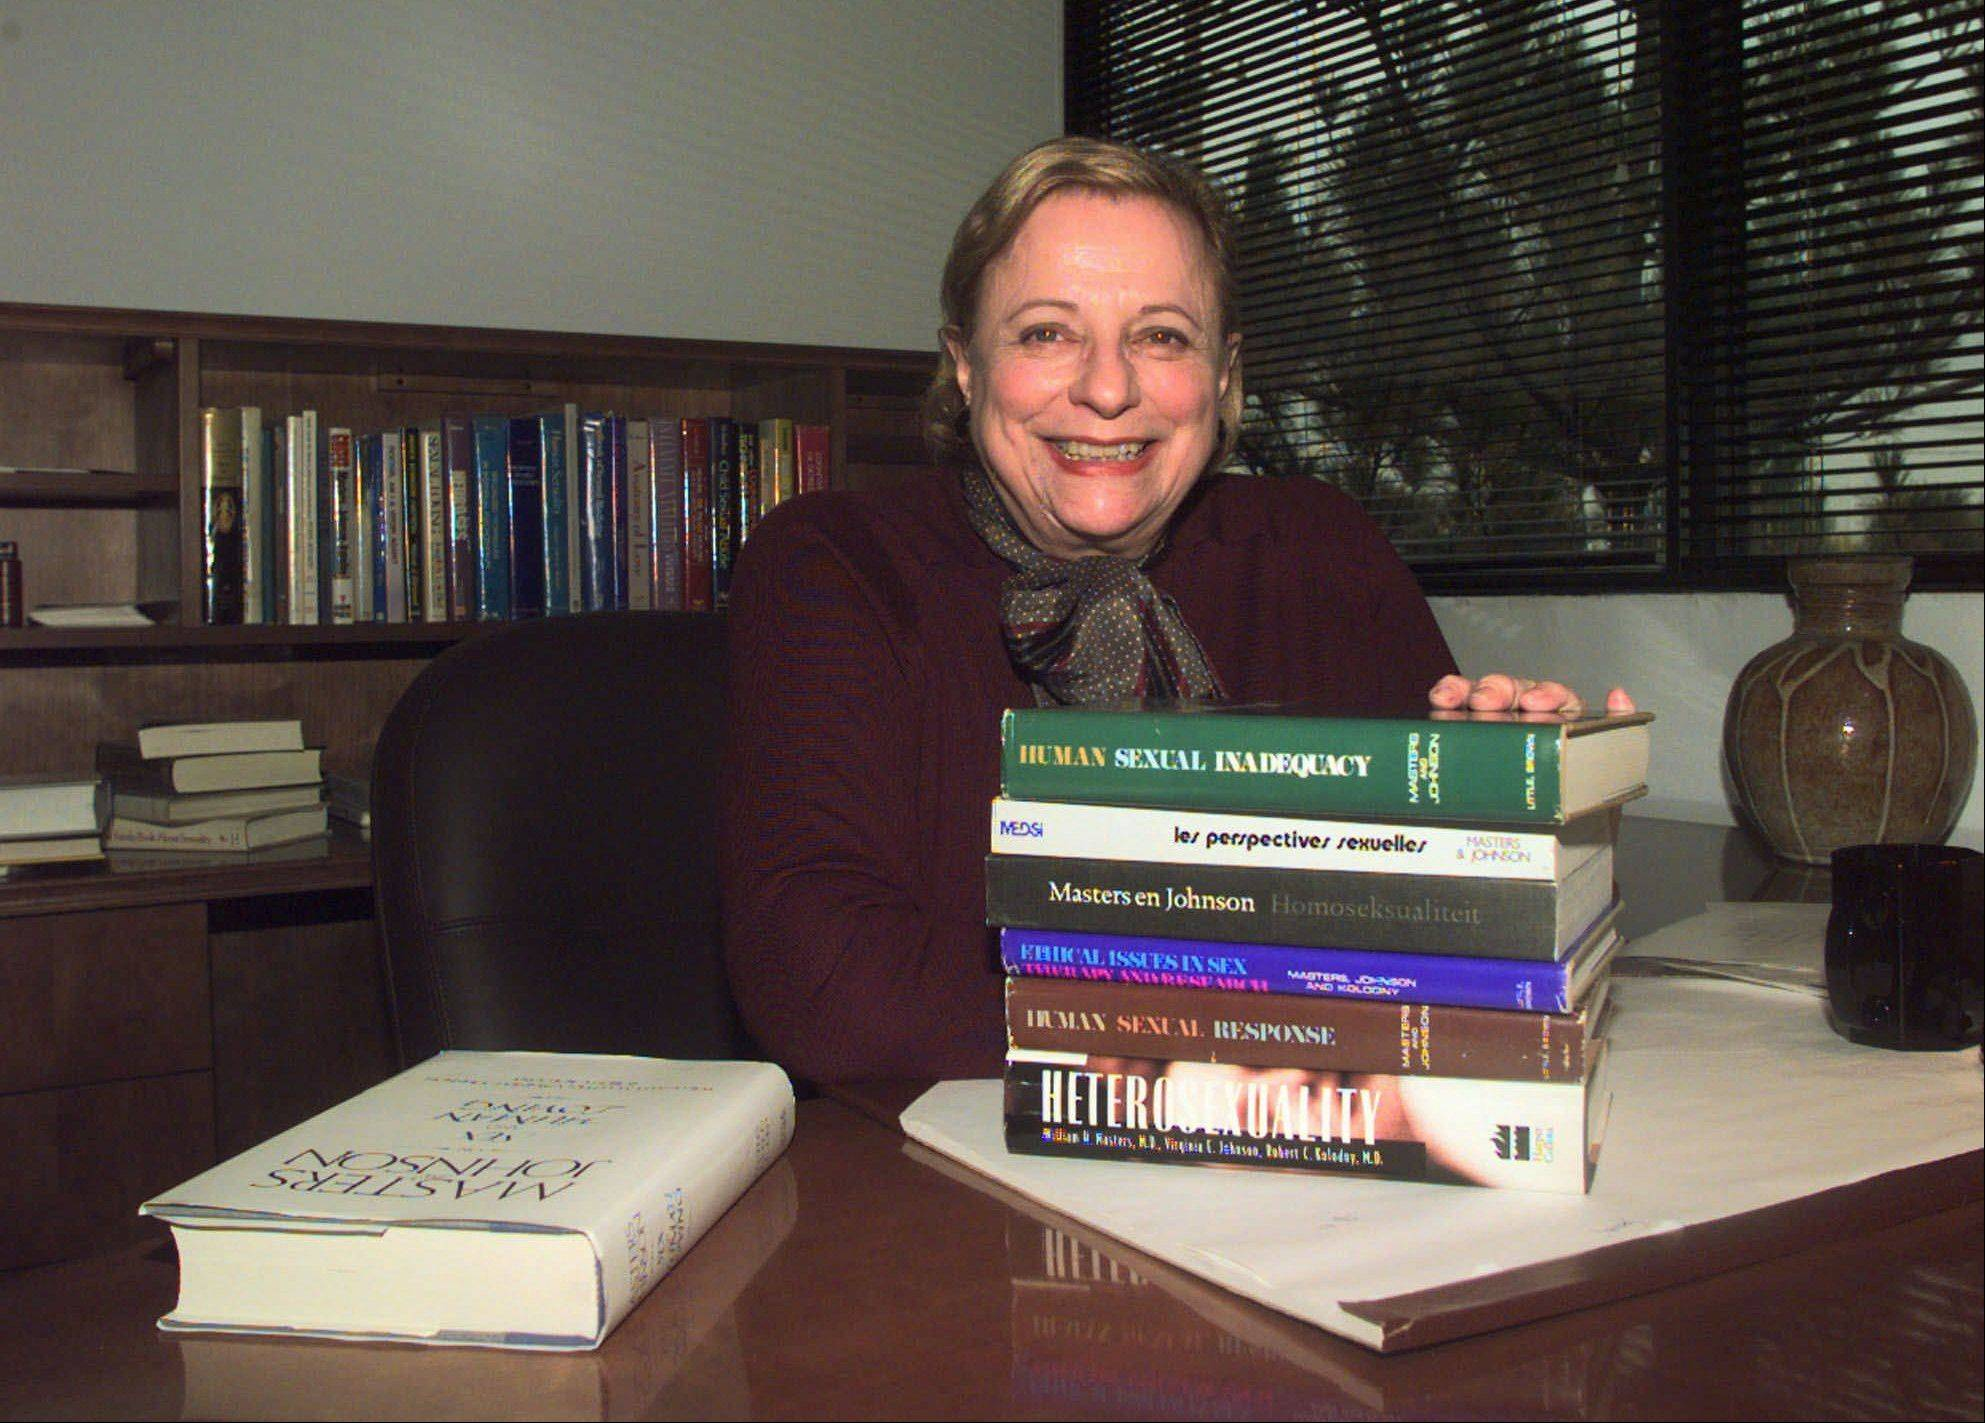 Virgina Masters Johnson in her office at the Virginia Johnson Masters Learning Center in Creve Coeur, Mo., with some of the 19 publications that she has written or co-authored.